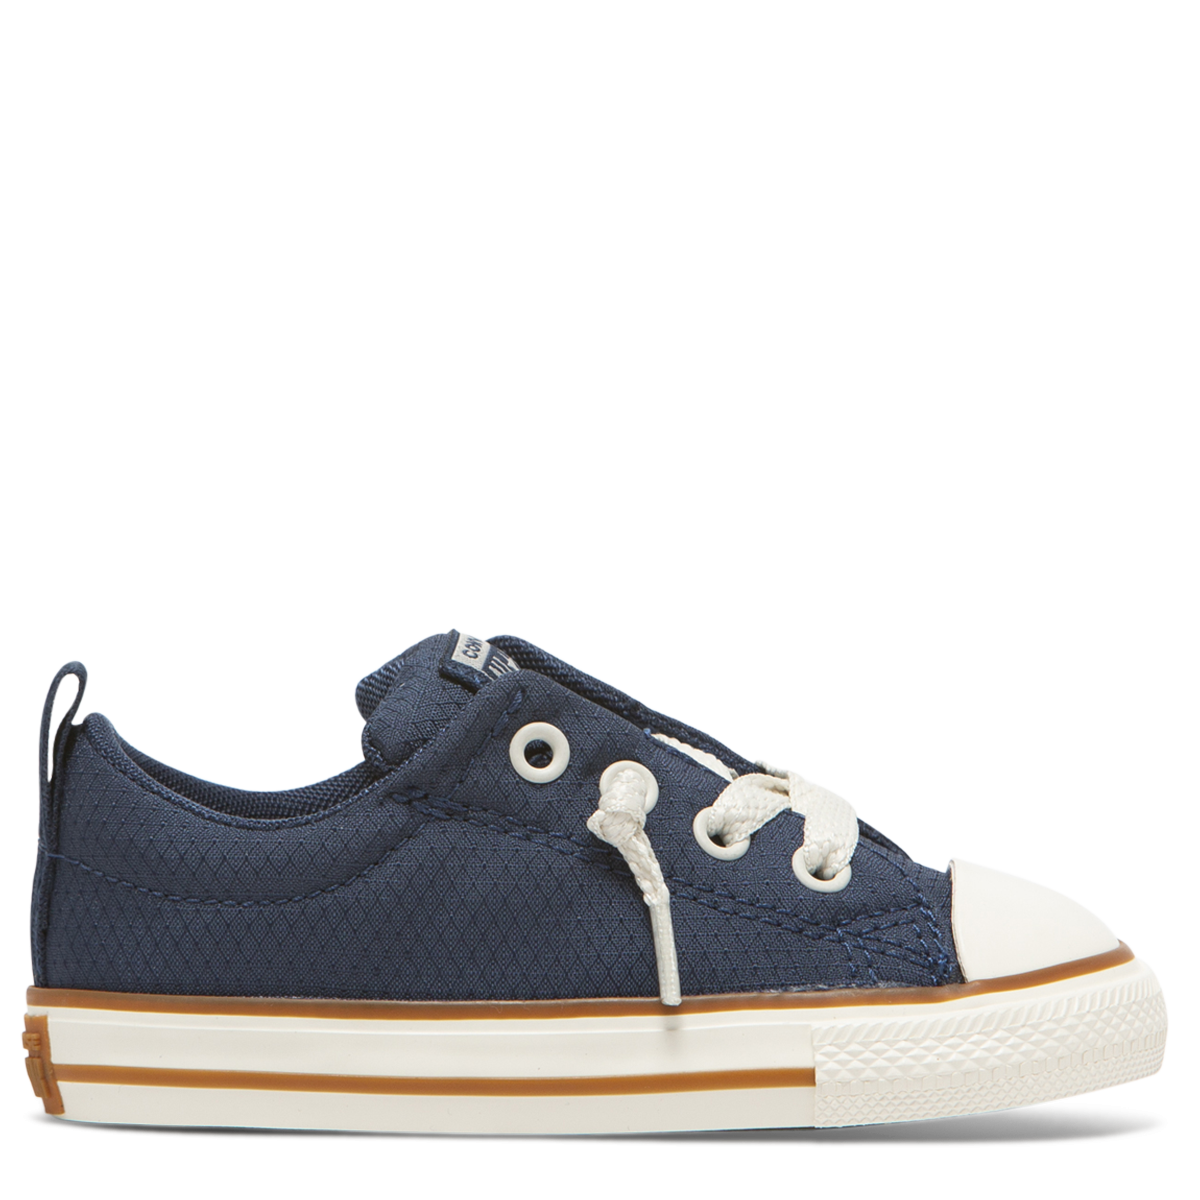 e750def5bd23 Converse Chuck Taylor All Star Street Pinstripe Toddler Low Top Navy 7 –  Famous Rock Shop